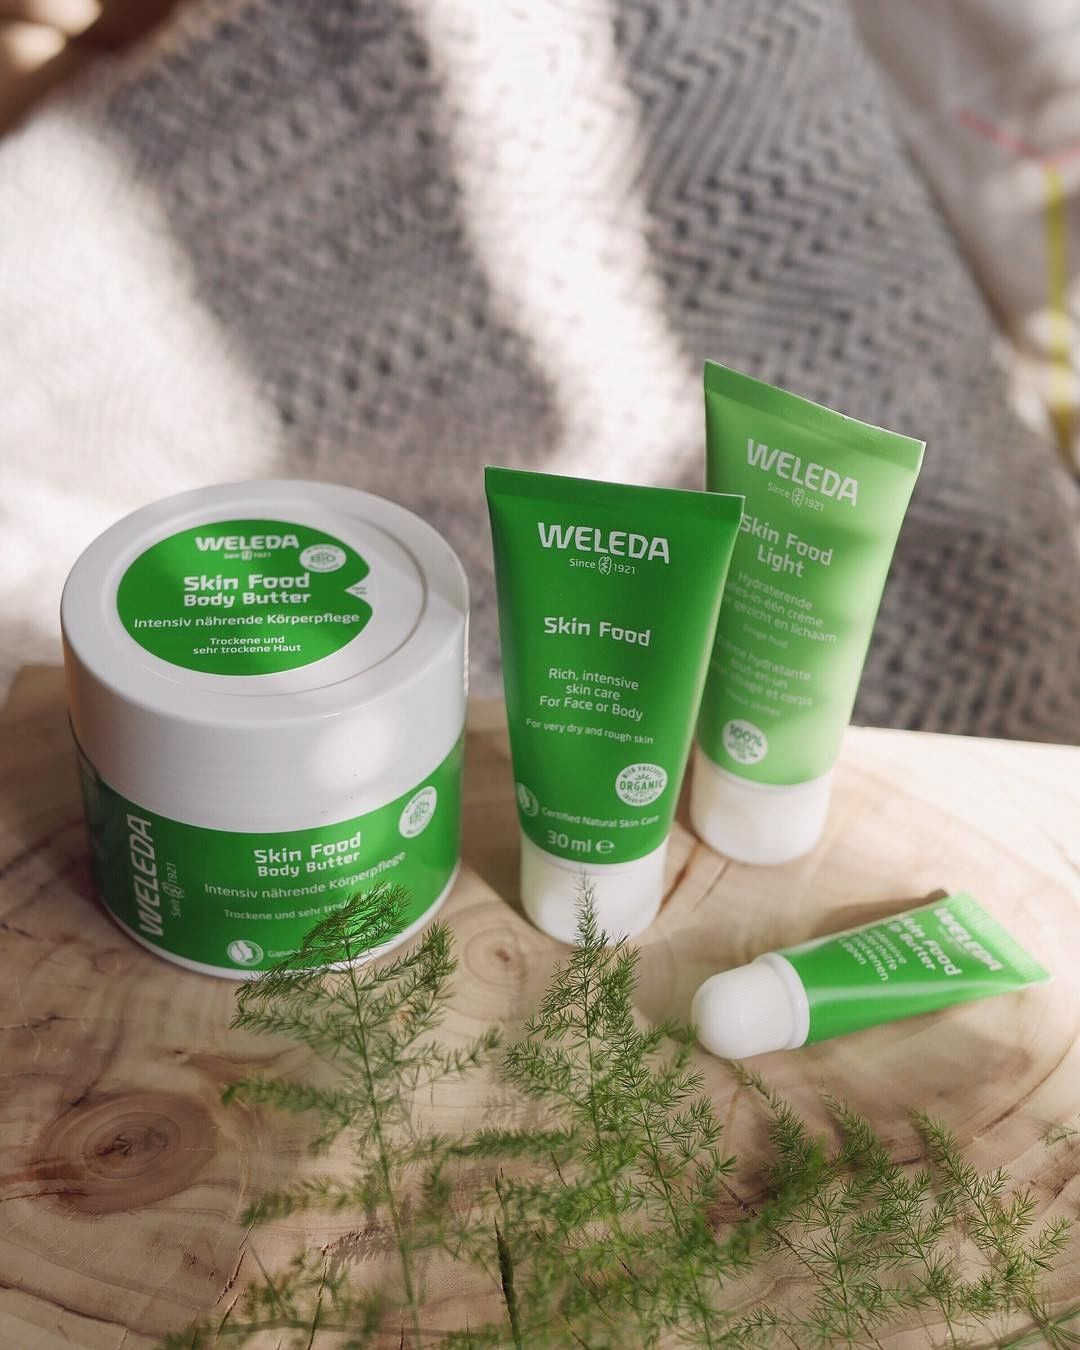 Mother S Day Gift Ideas Thank Her In A Truly Special Way With Our Skin Food Range For The Special Woman Who Has Alwa Weleda Skin Food Skin Food Natural Gifts